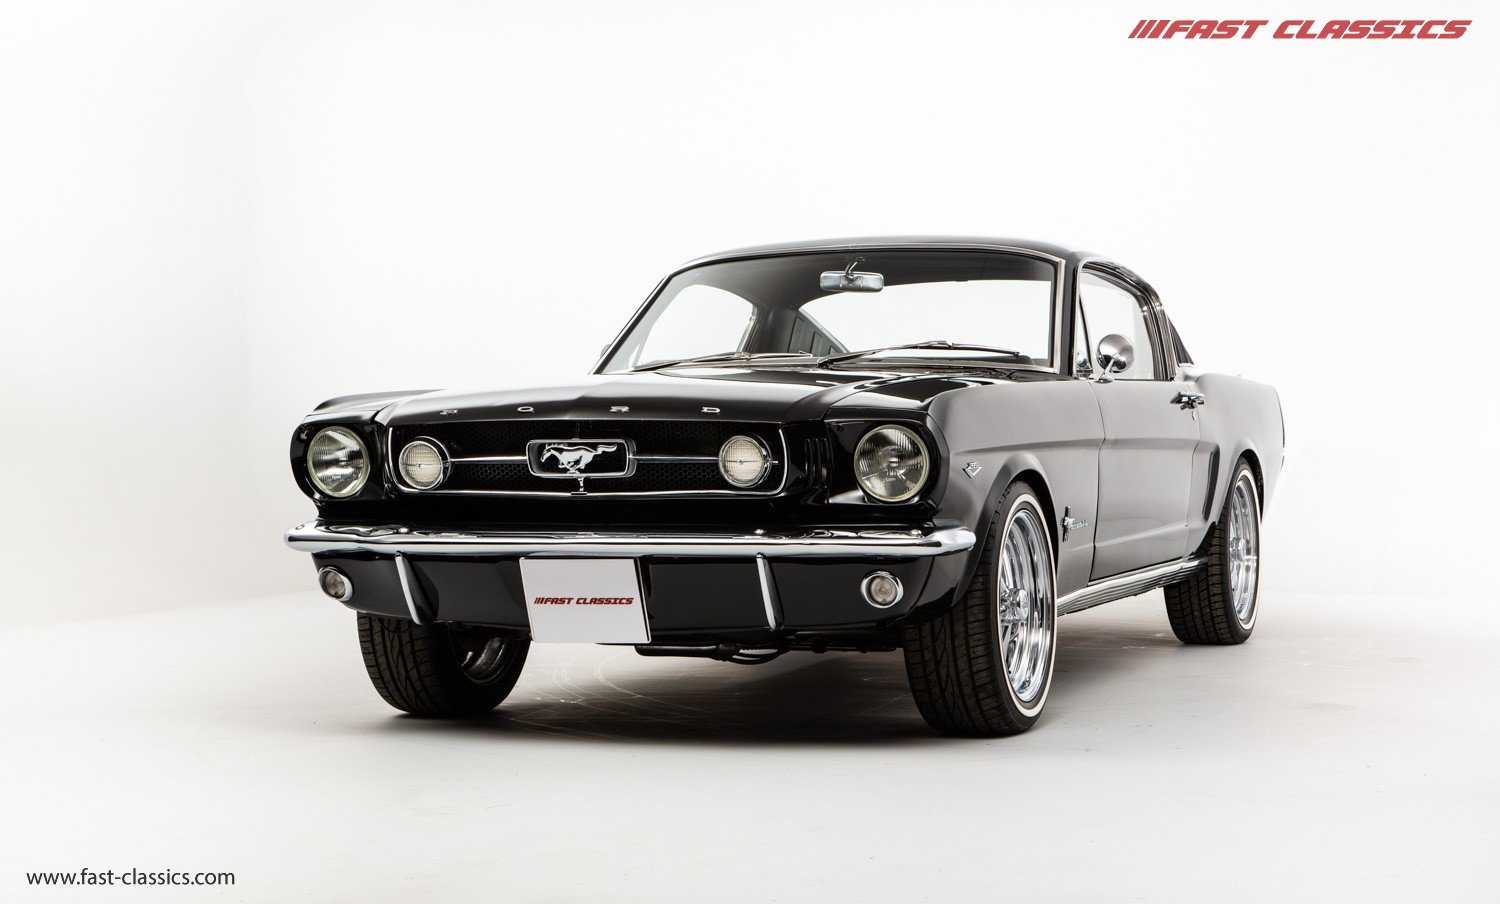 1966 FORD MUSTANG FASTBACK // 289 FASTBACK // RHD CONVERSION  For Sale (picture 2 of 22)